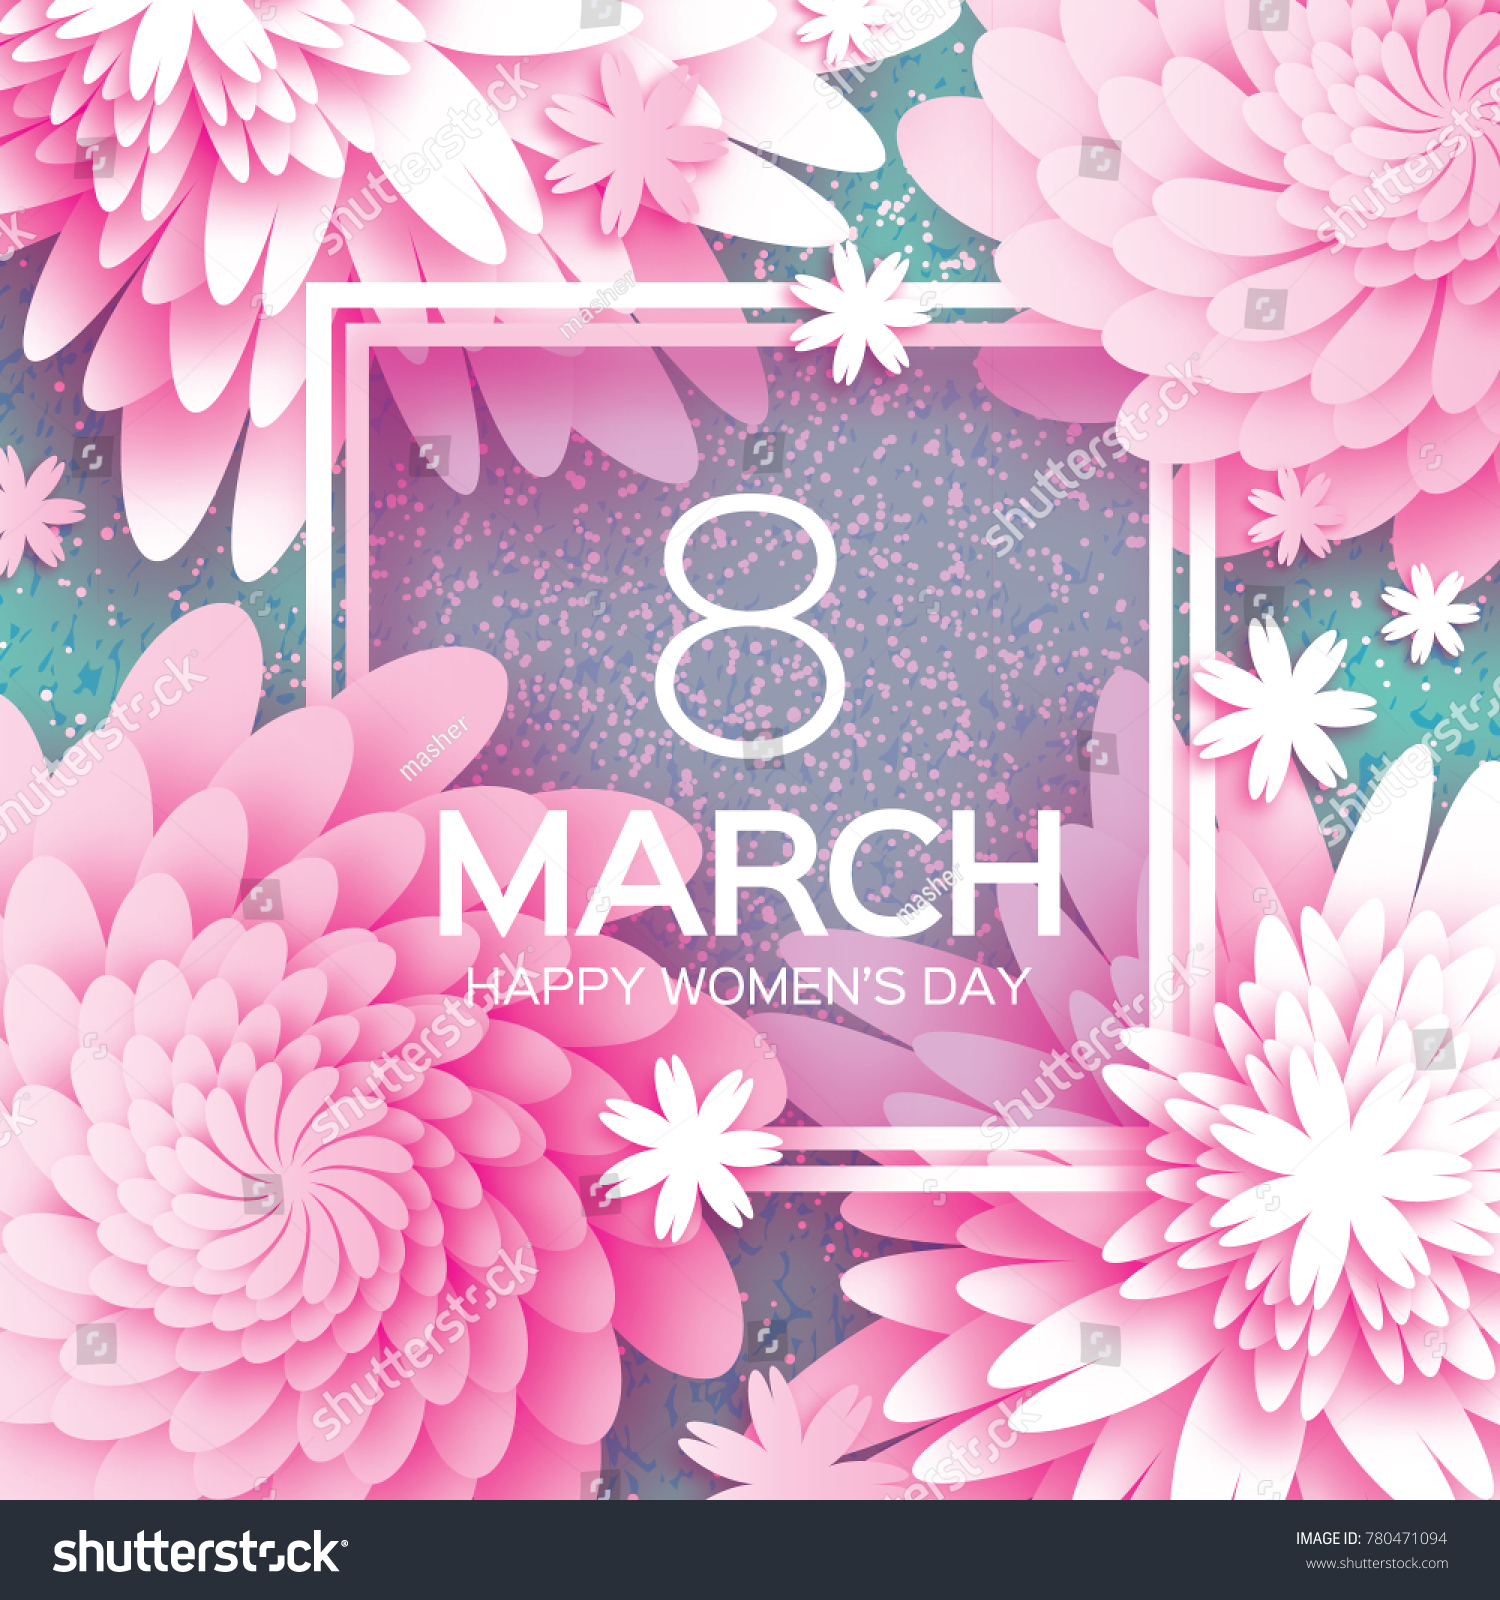 8 March Happy Mothers Day Pink Paper Cut Floral Greeting Card